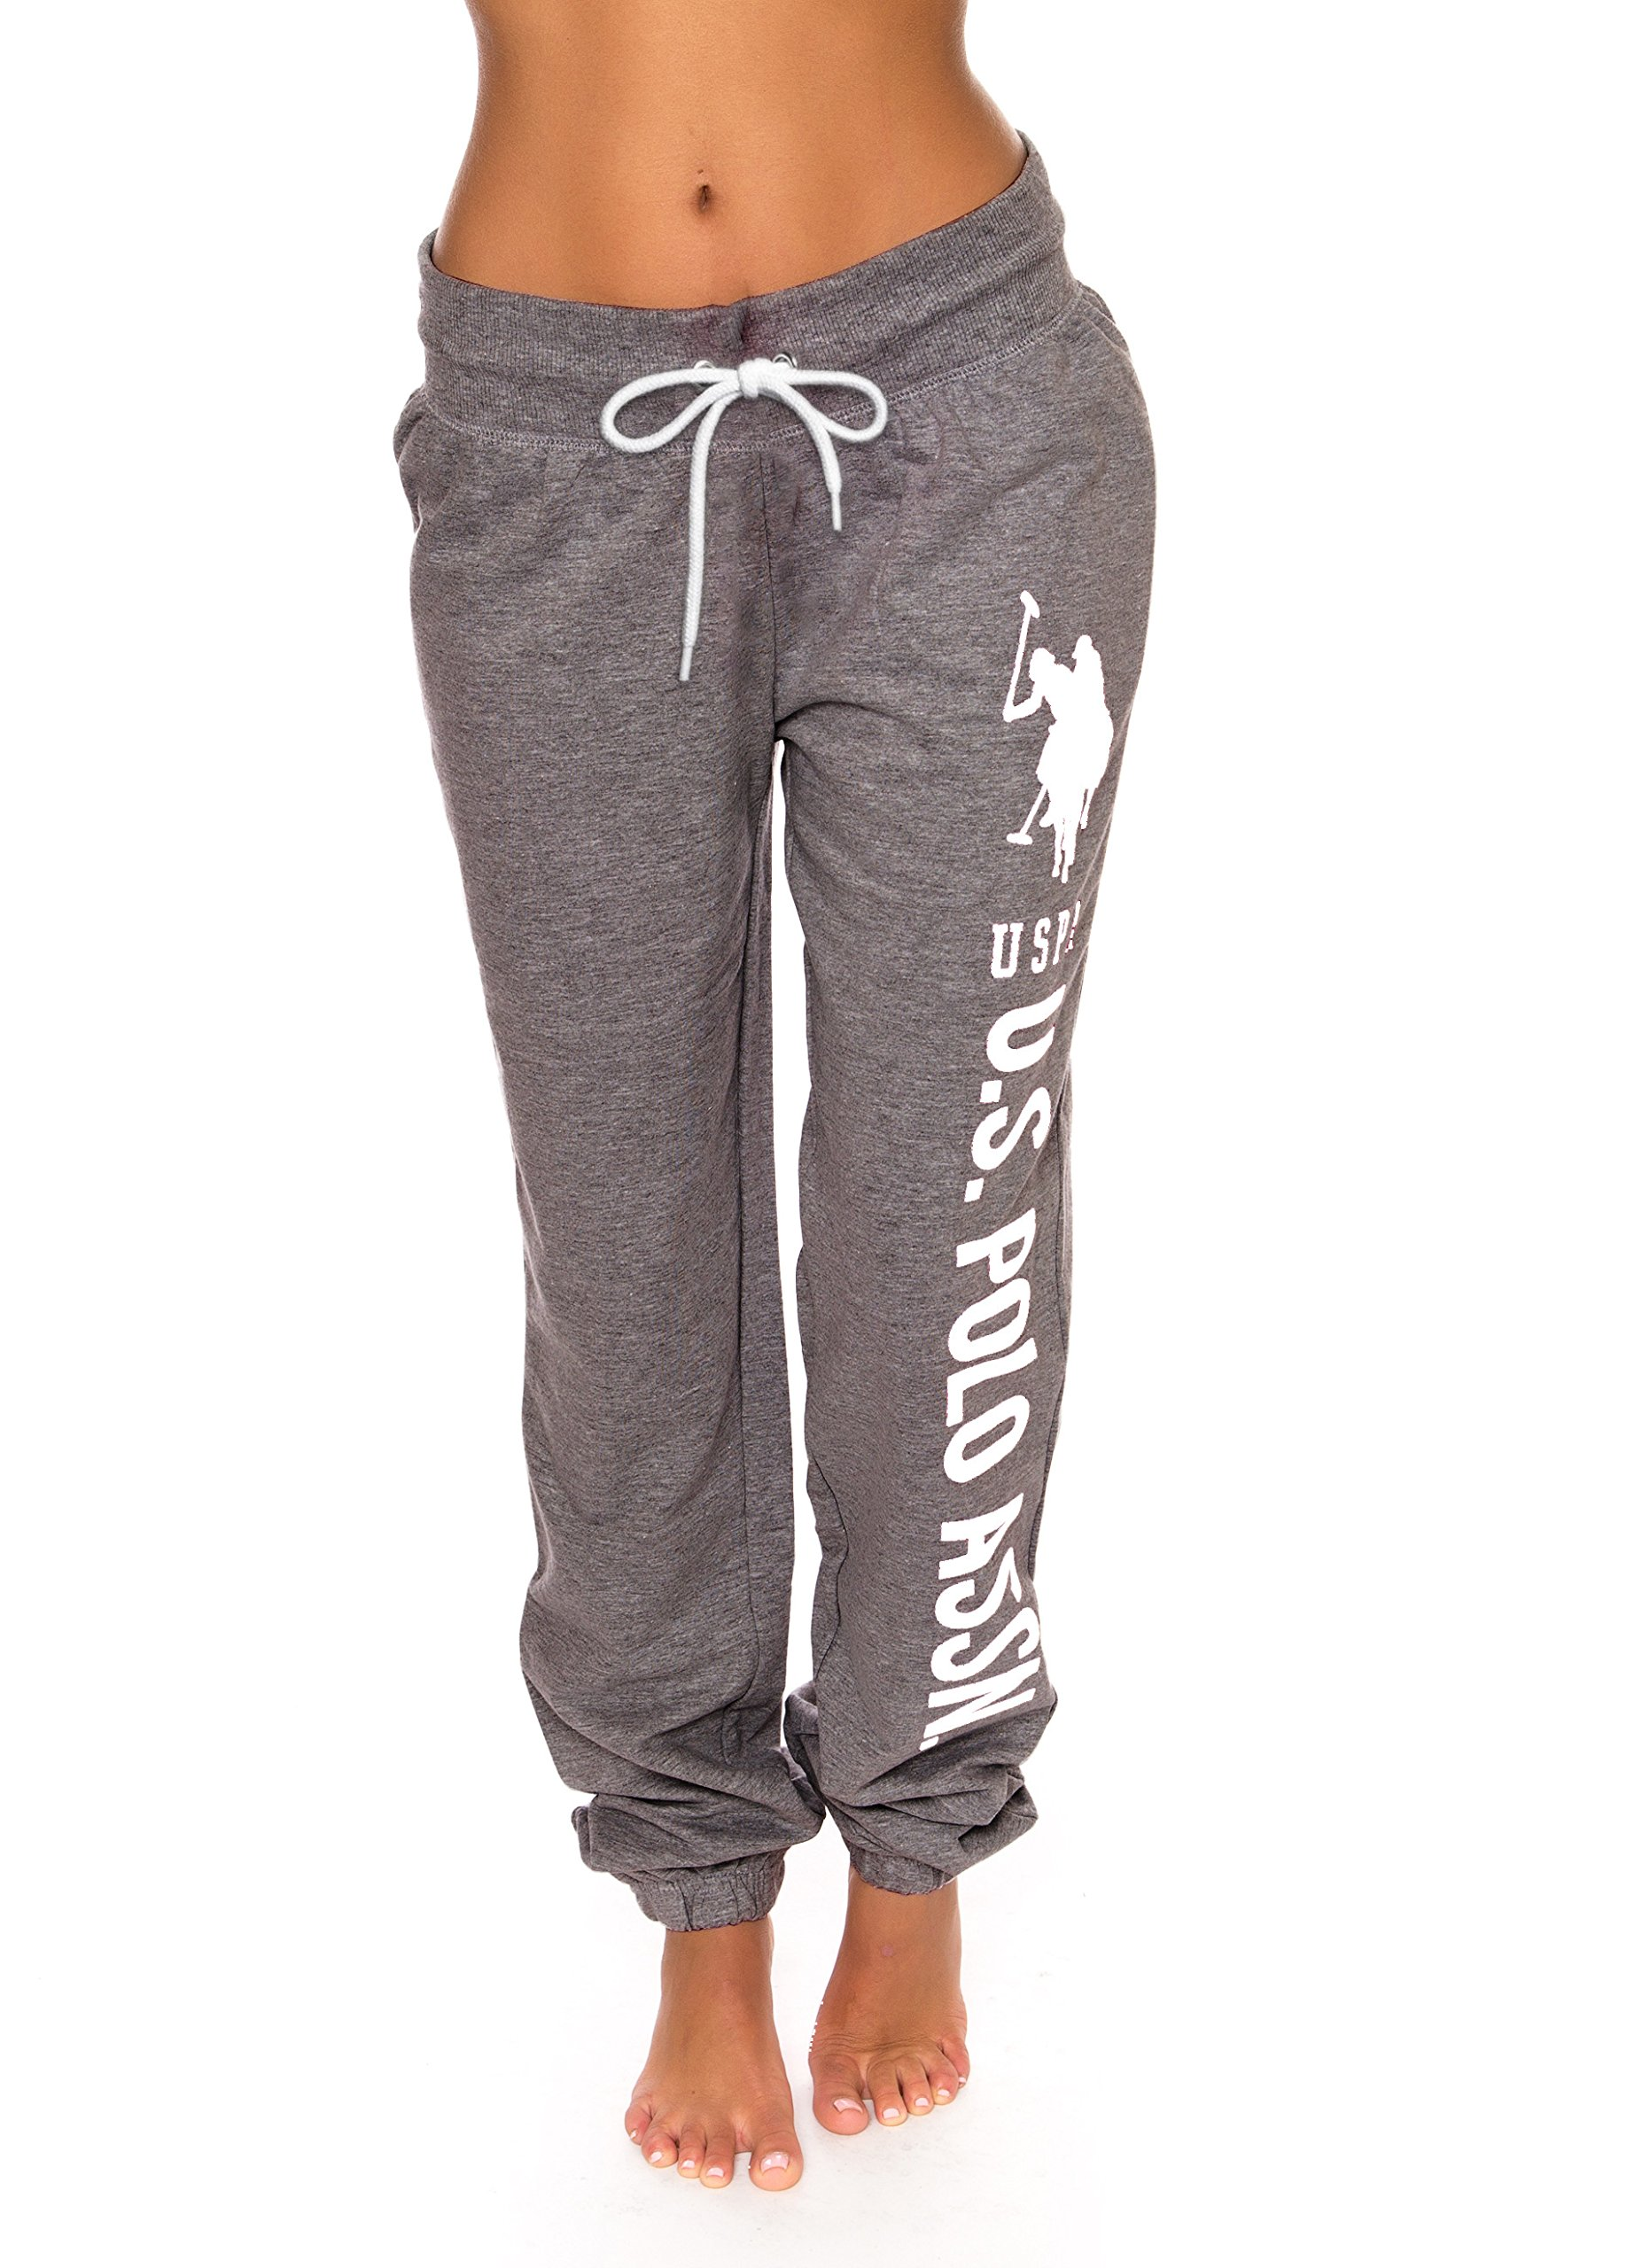 U.S. Polo Assn. Womens Printed French Terry Boyfriend Jogger Sweatpants Charcoal Heather Large by U.S. Polo Assn.